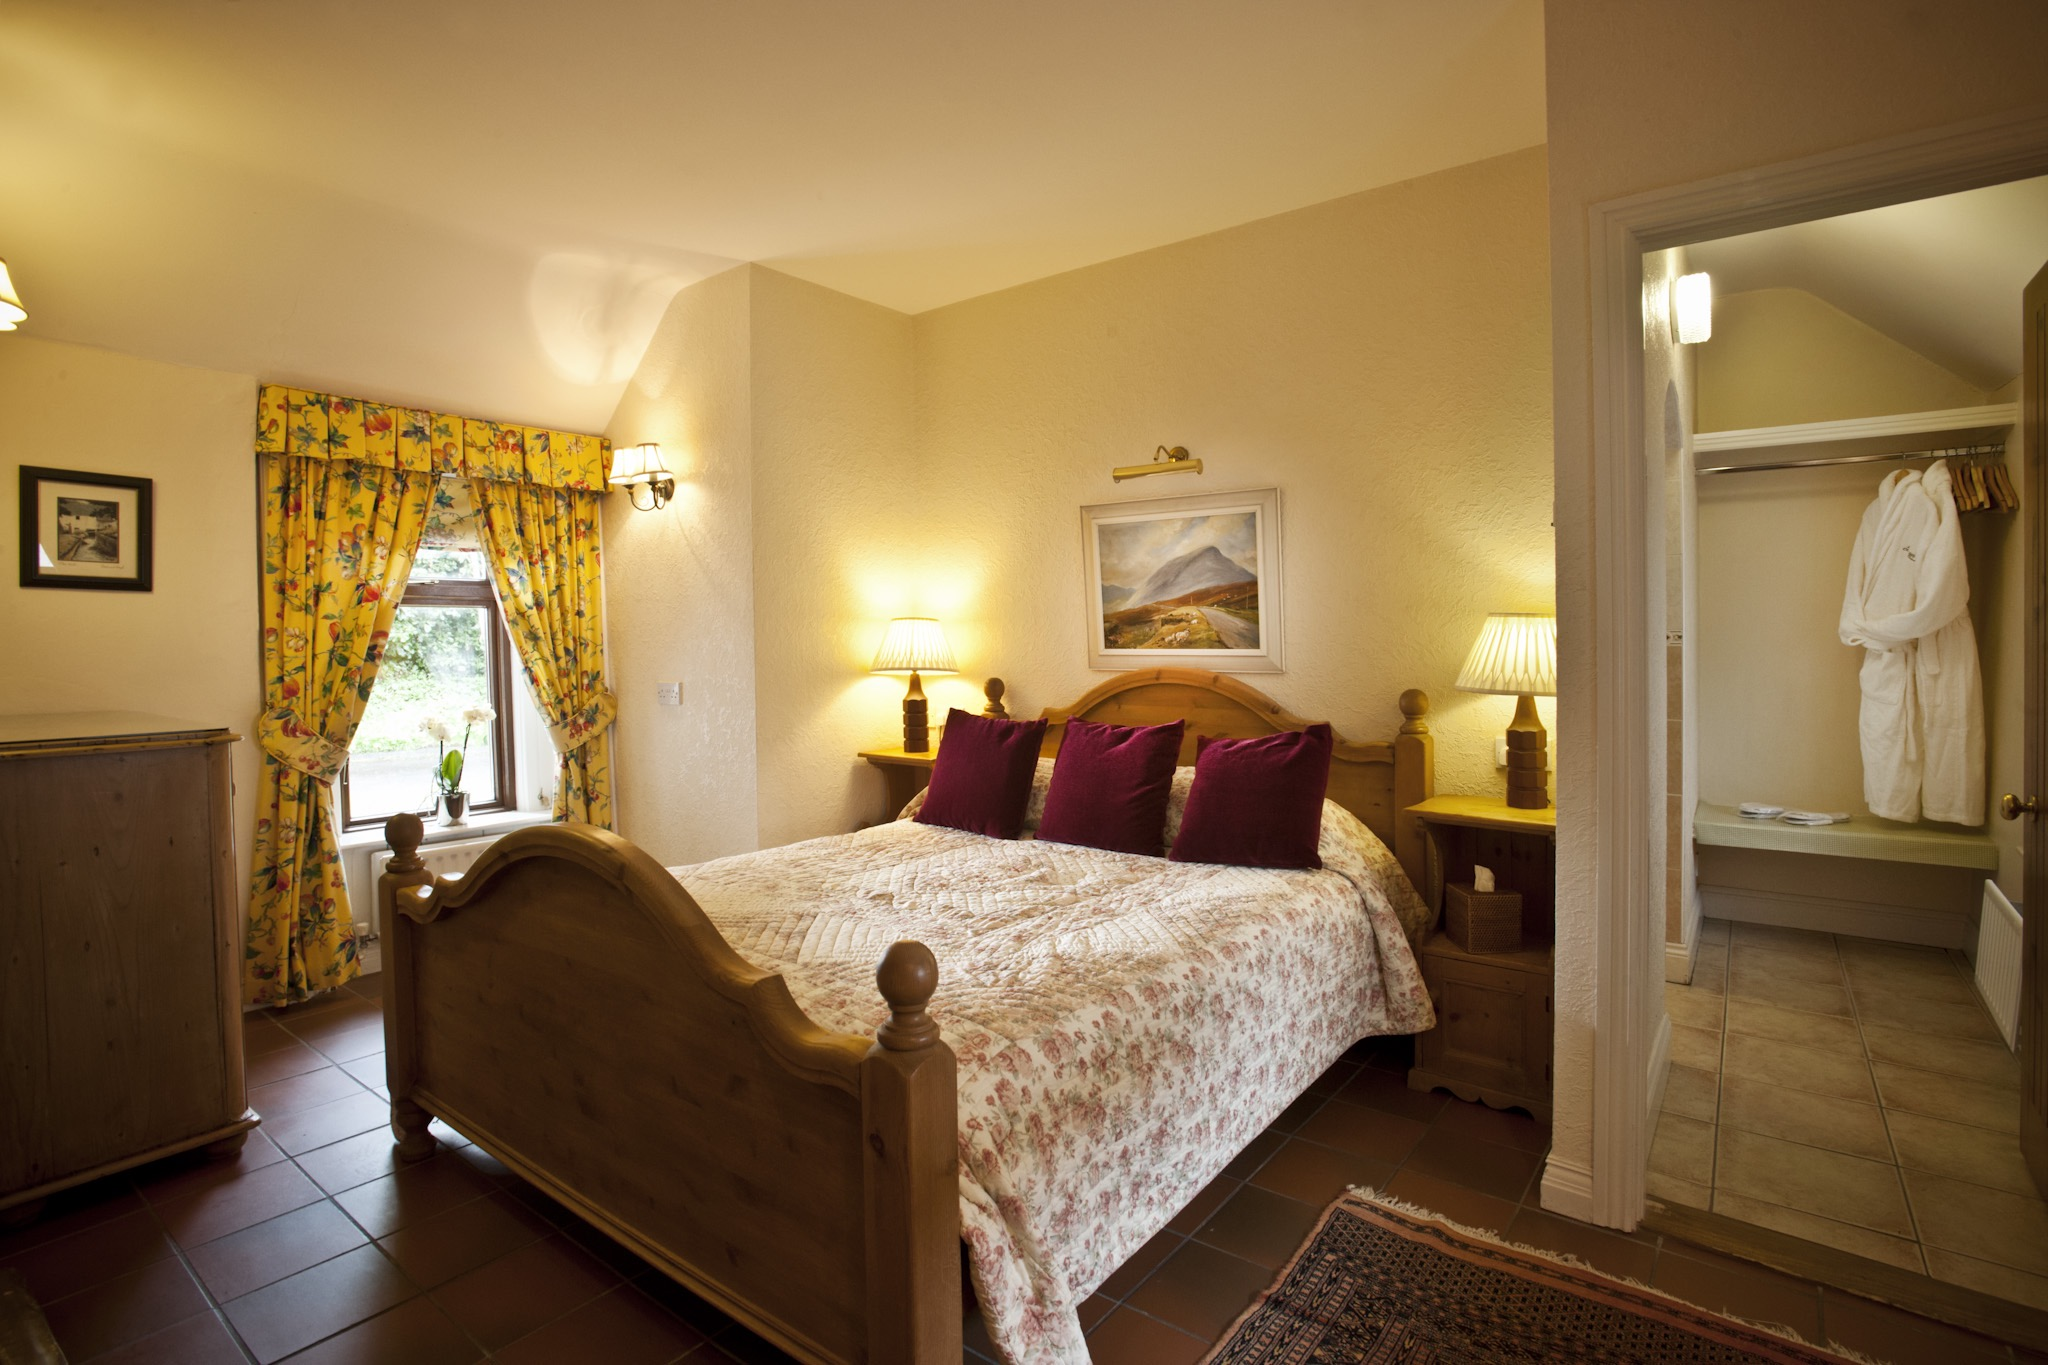 4. The Cottages Ireland ~ Rose Cottage, Master Suite